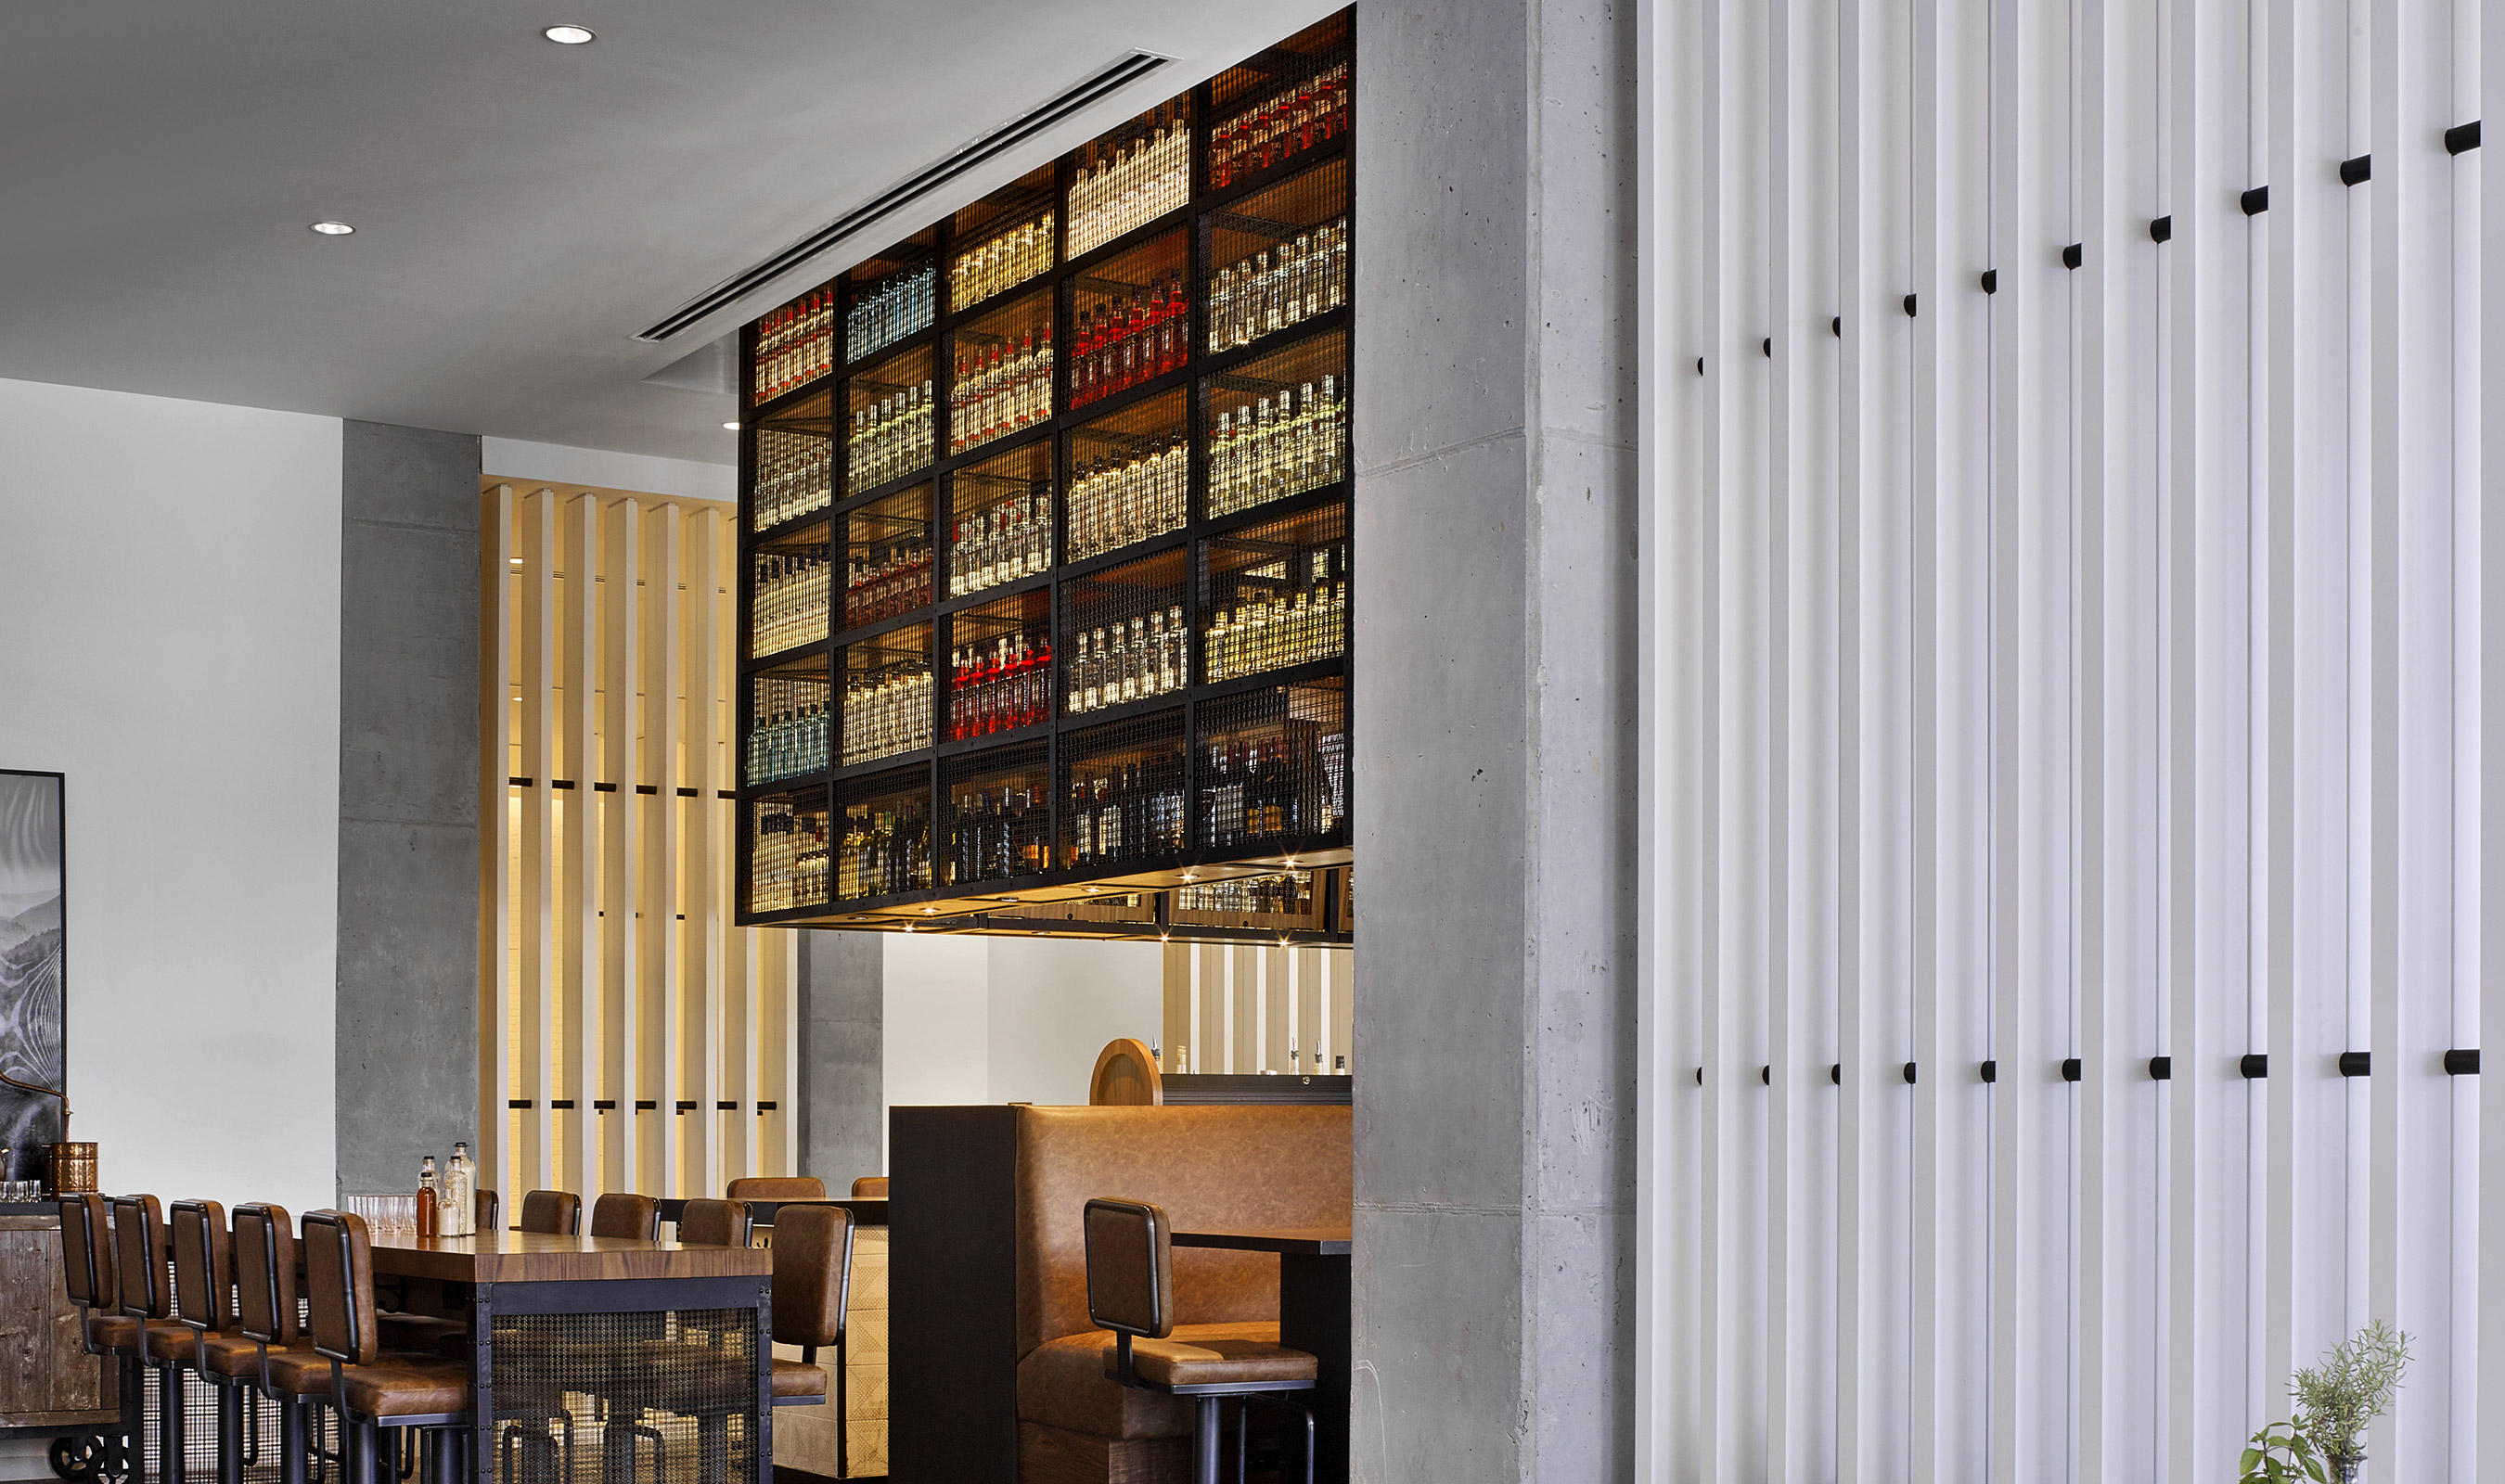 Located inside the Renaissance Atlanta Airport Gateway Hotel is the Hickory & Hazel Table & Bar, a 2,976 square foot restaurant that seats 106 guests.